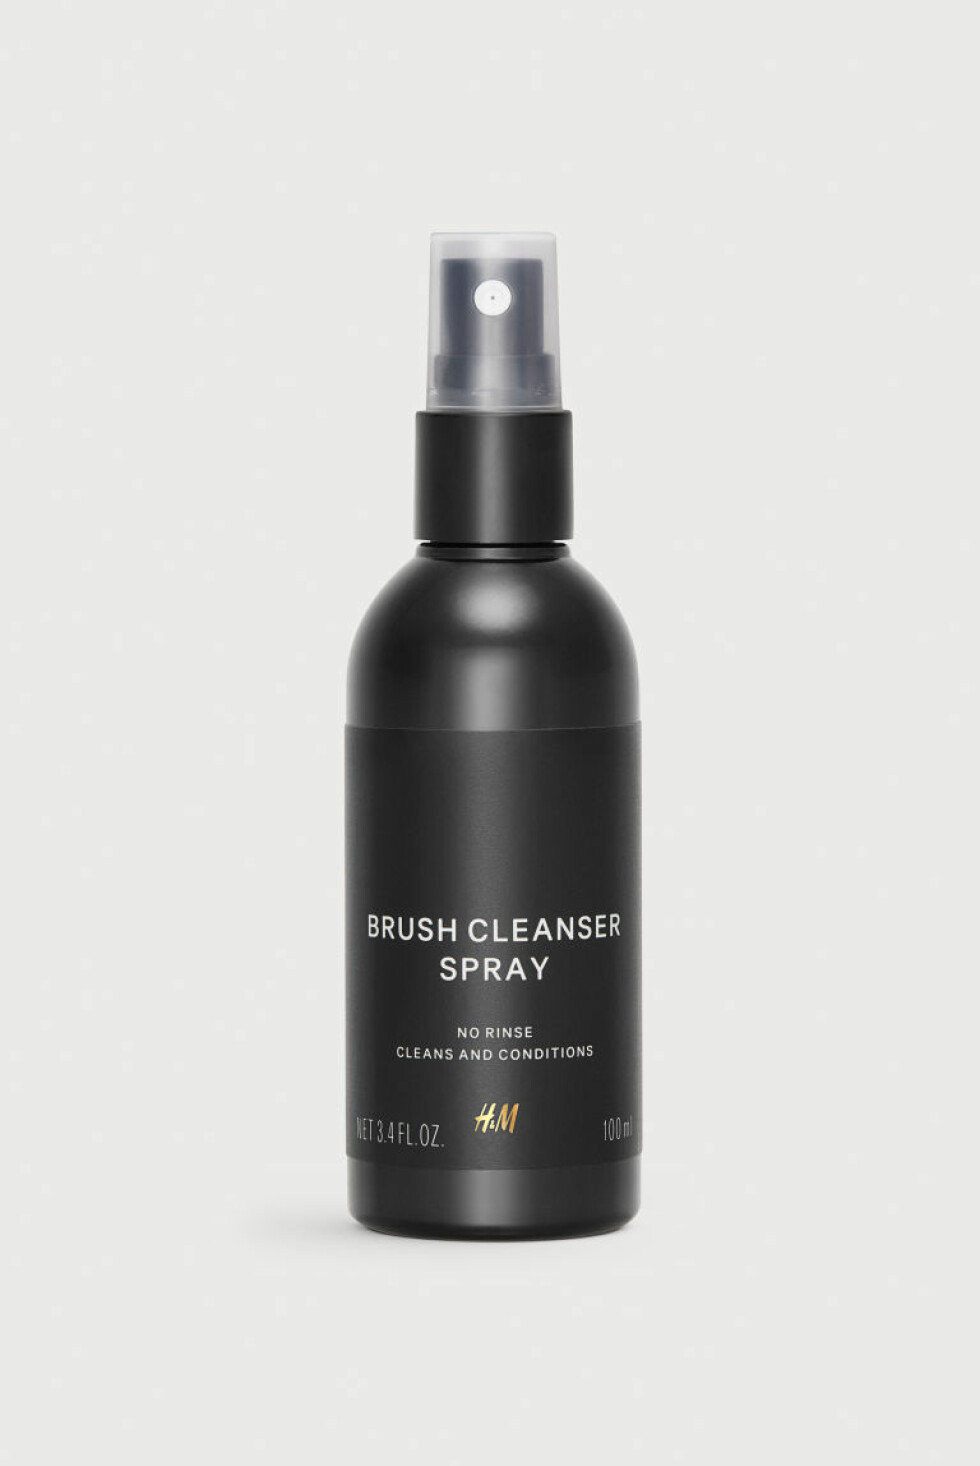 Brush cleanser fra H&M |50,-| https://www2.hm.com/no_no/productpage.0499059001.html